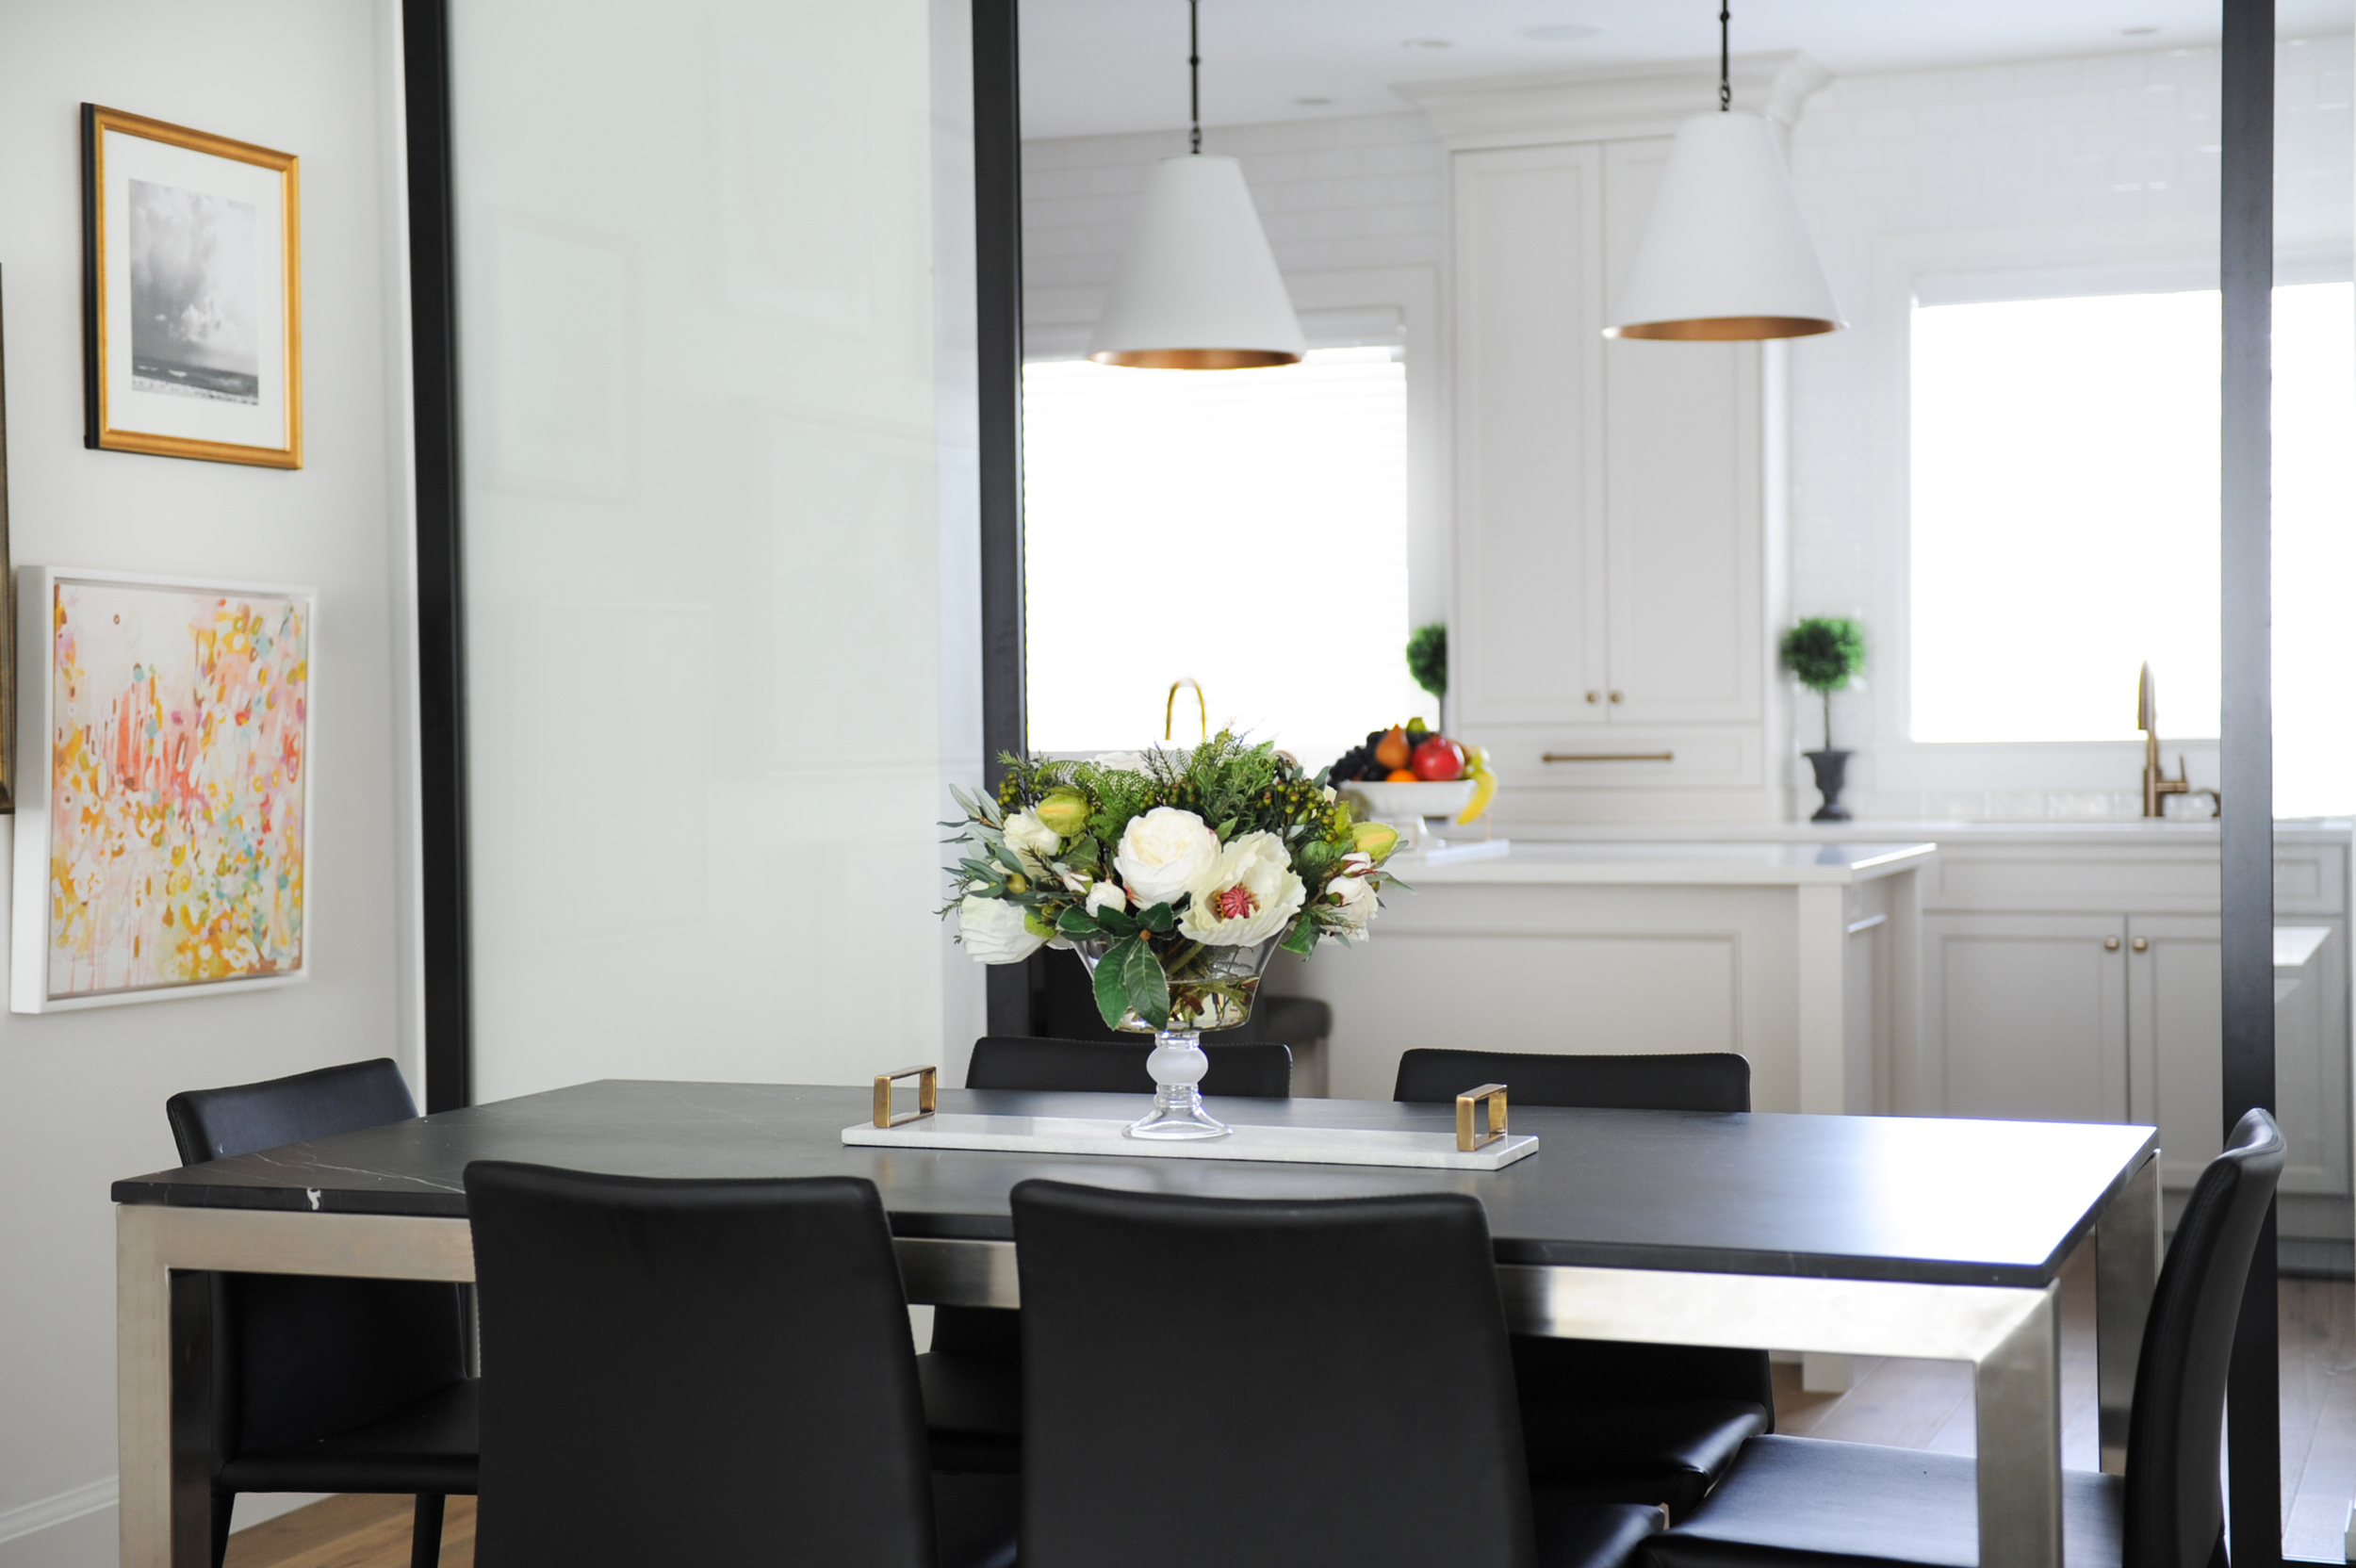 Vancouver Interior Design: Dining Room